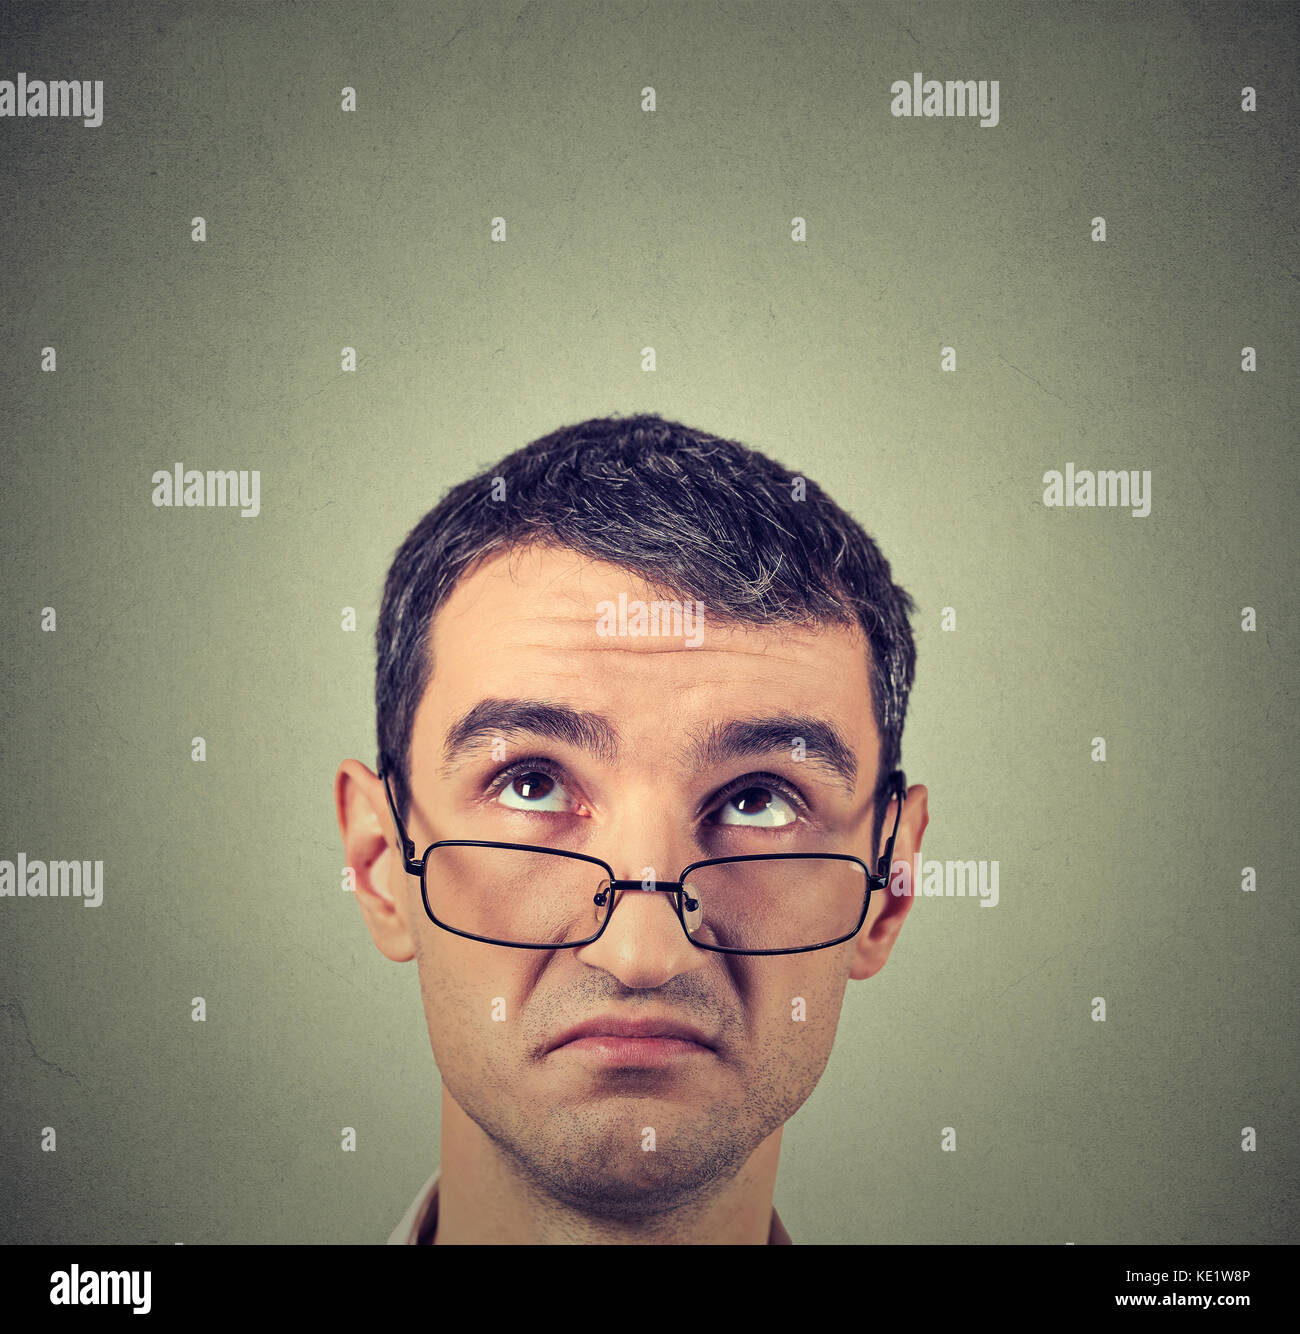 Closeup funny confused skeptical man in glasses thinking planning looking up above head isolated gray wall background Stock Photo